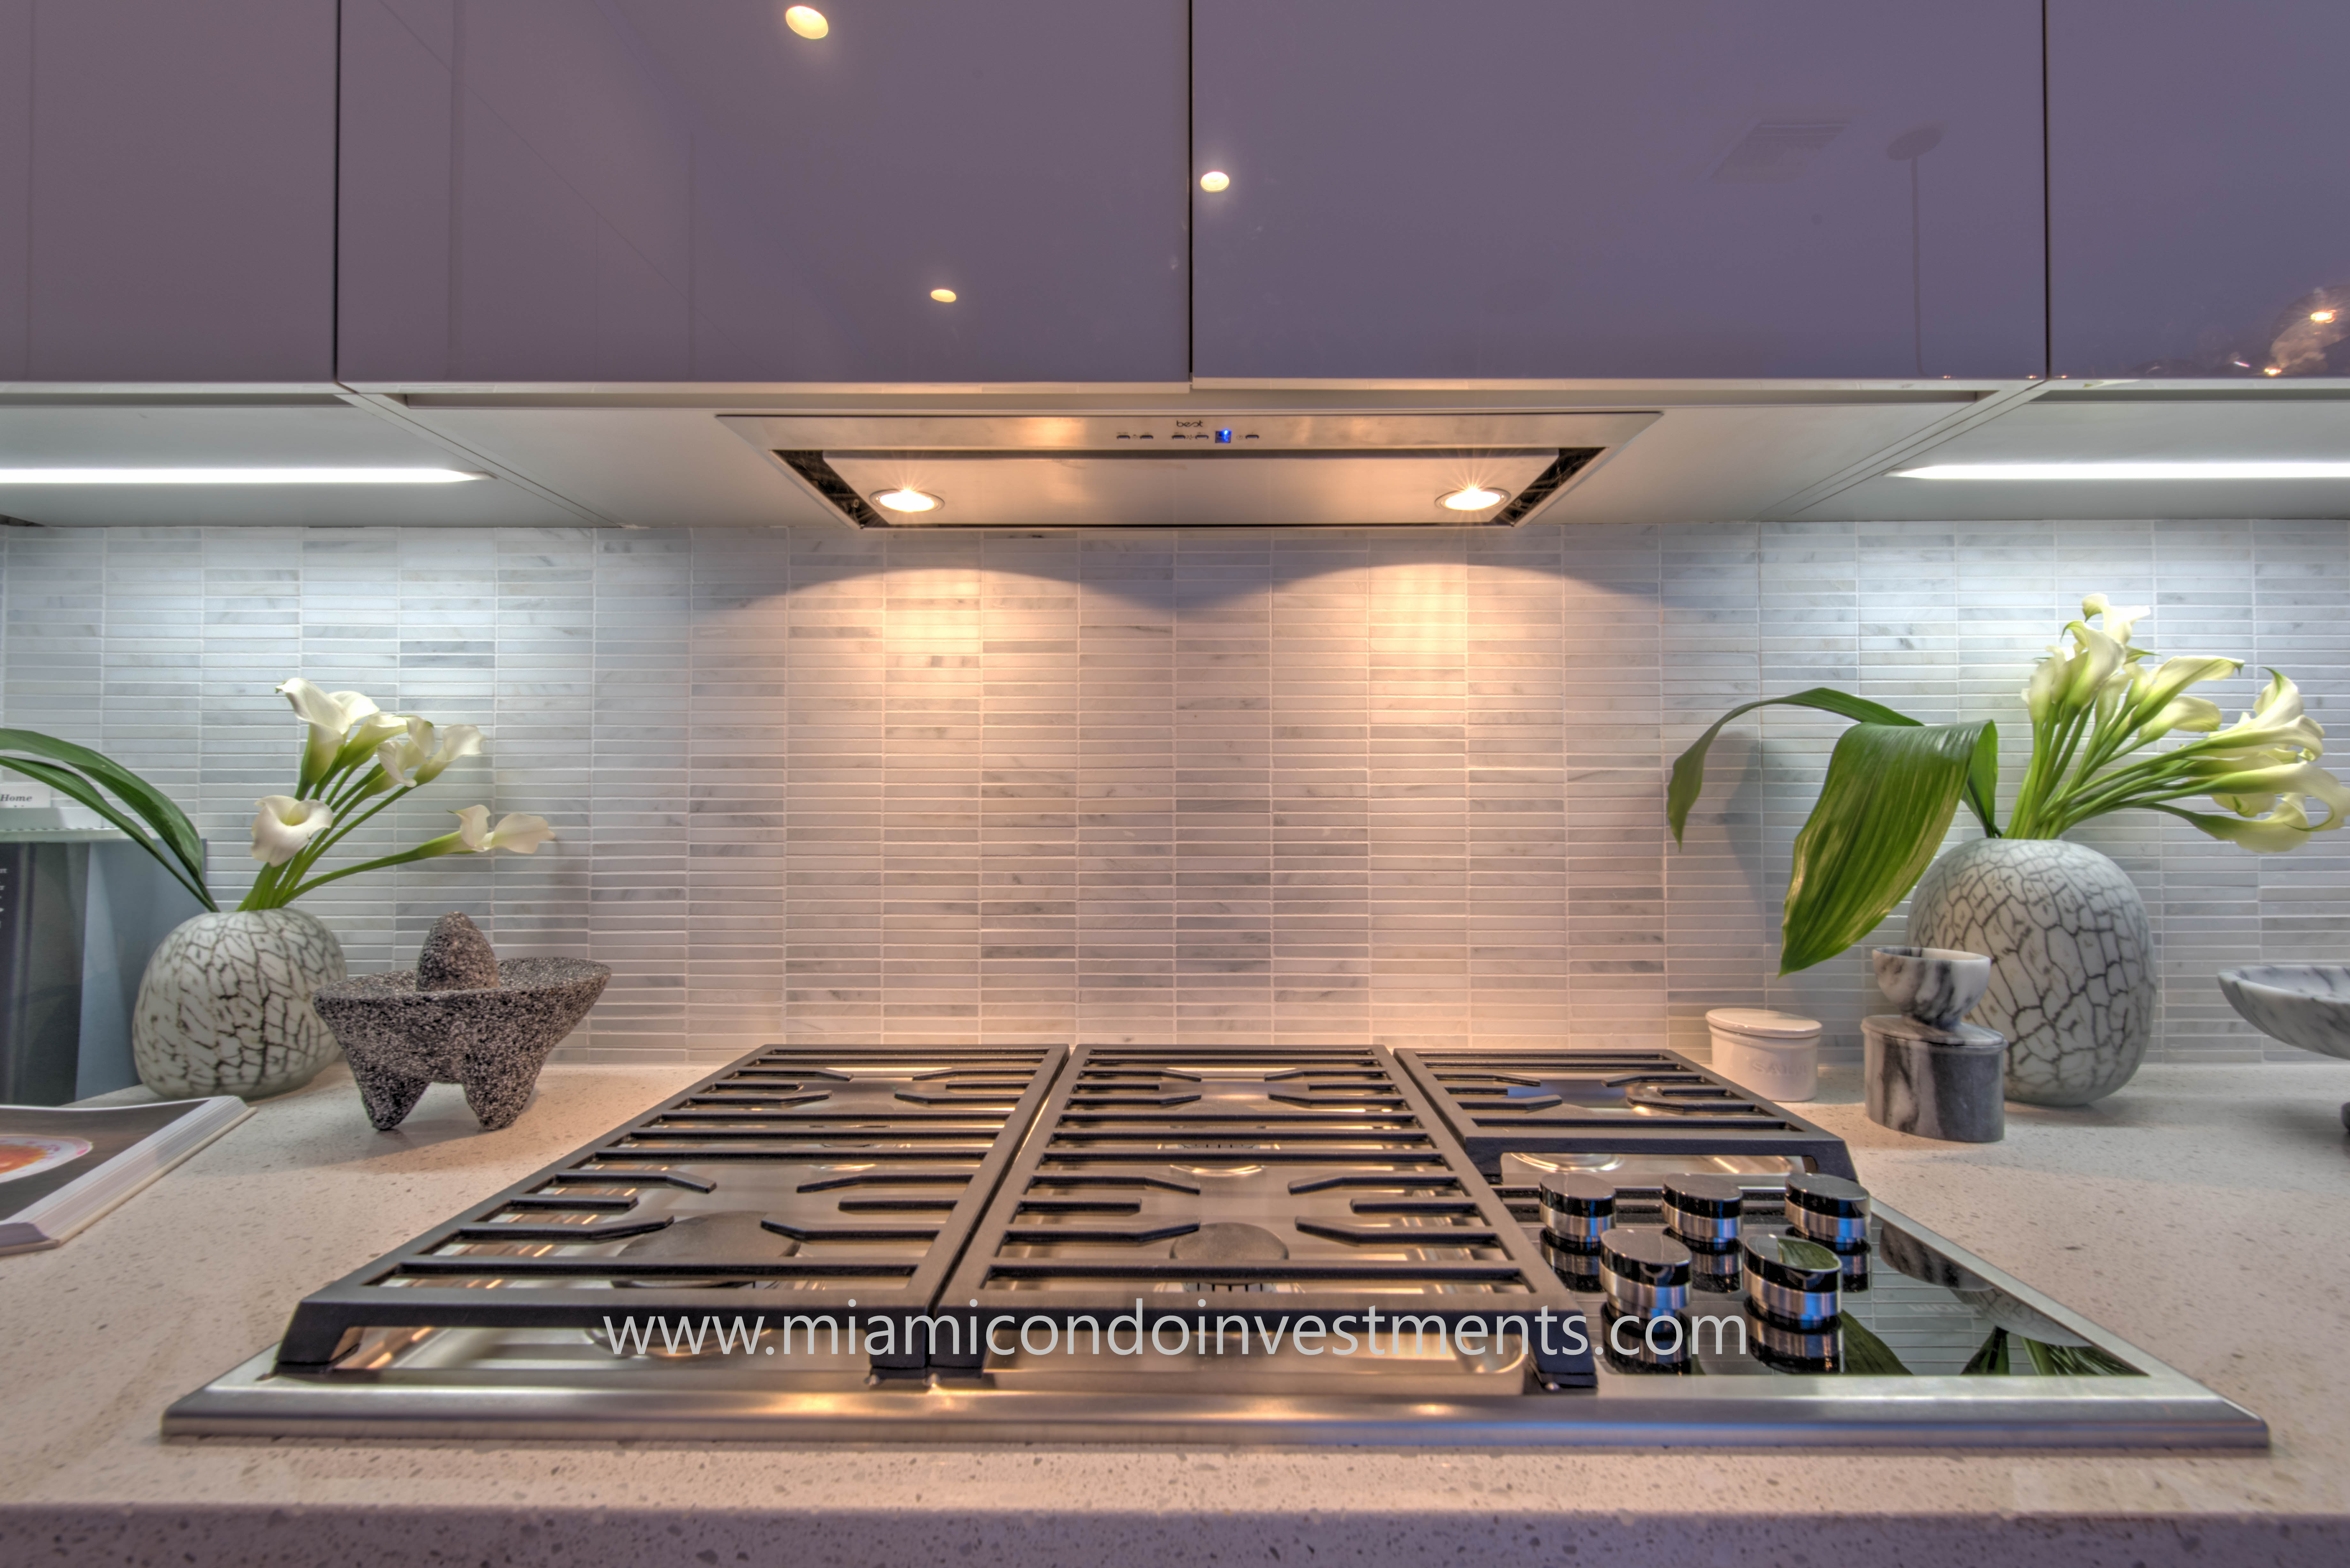 Elysee condos will include gas stoves in their kitchens